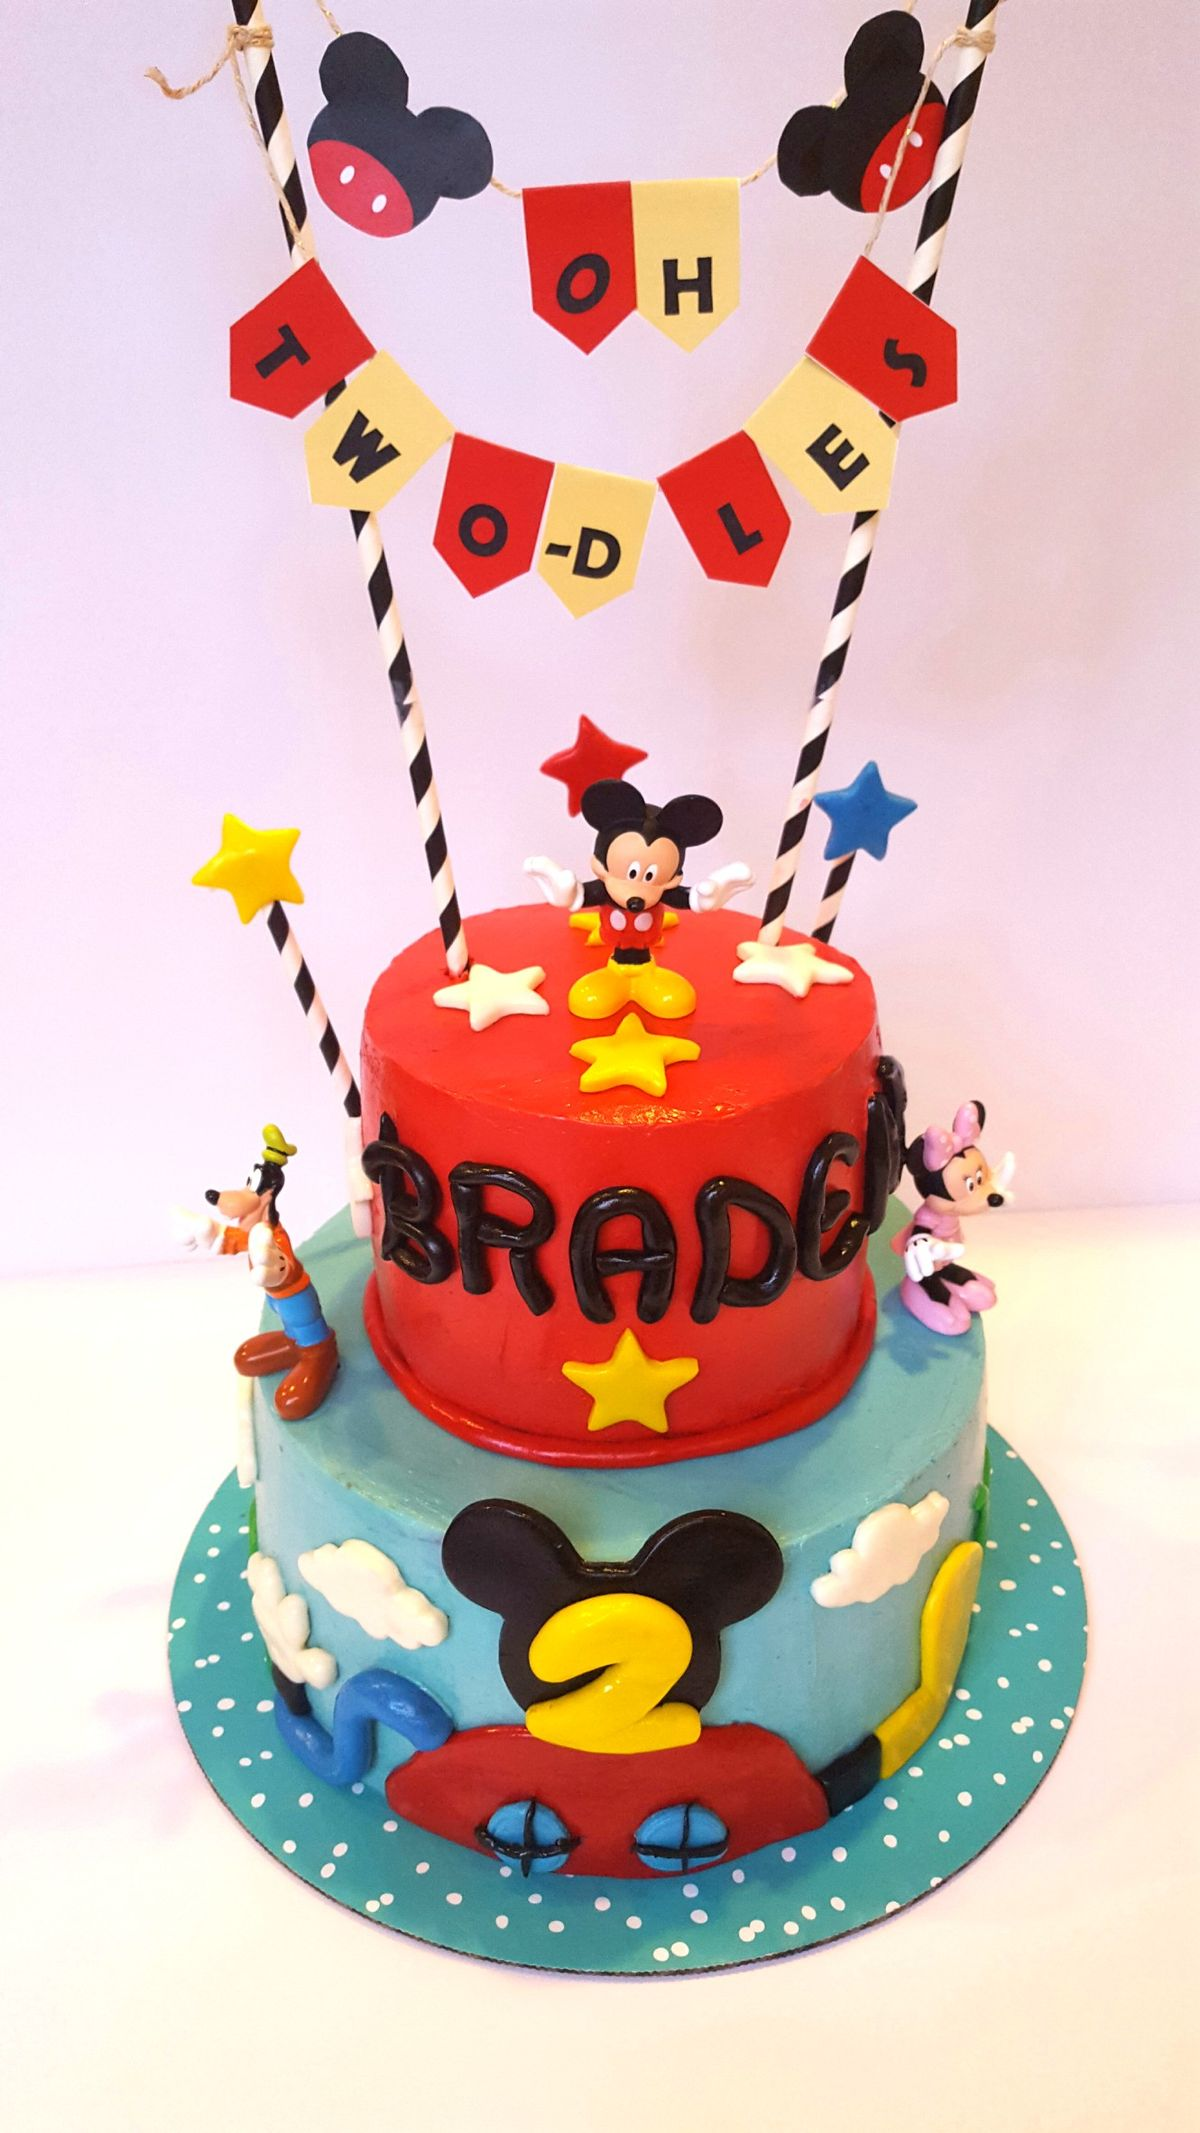 Oh Twodles! Mickey mouse cake for my 2 yr old boy